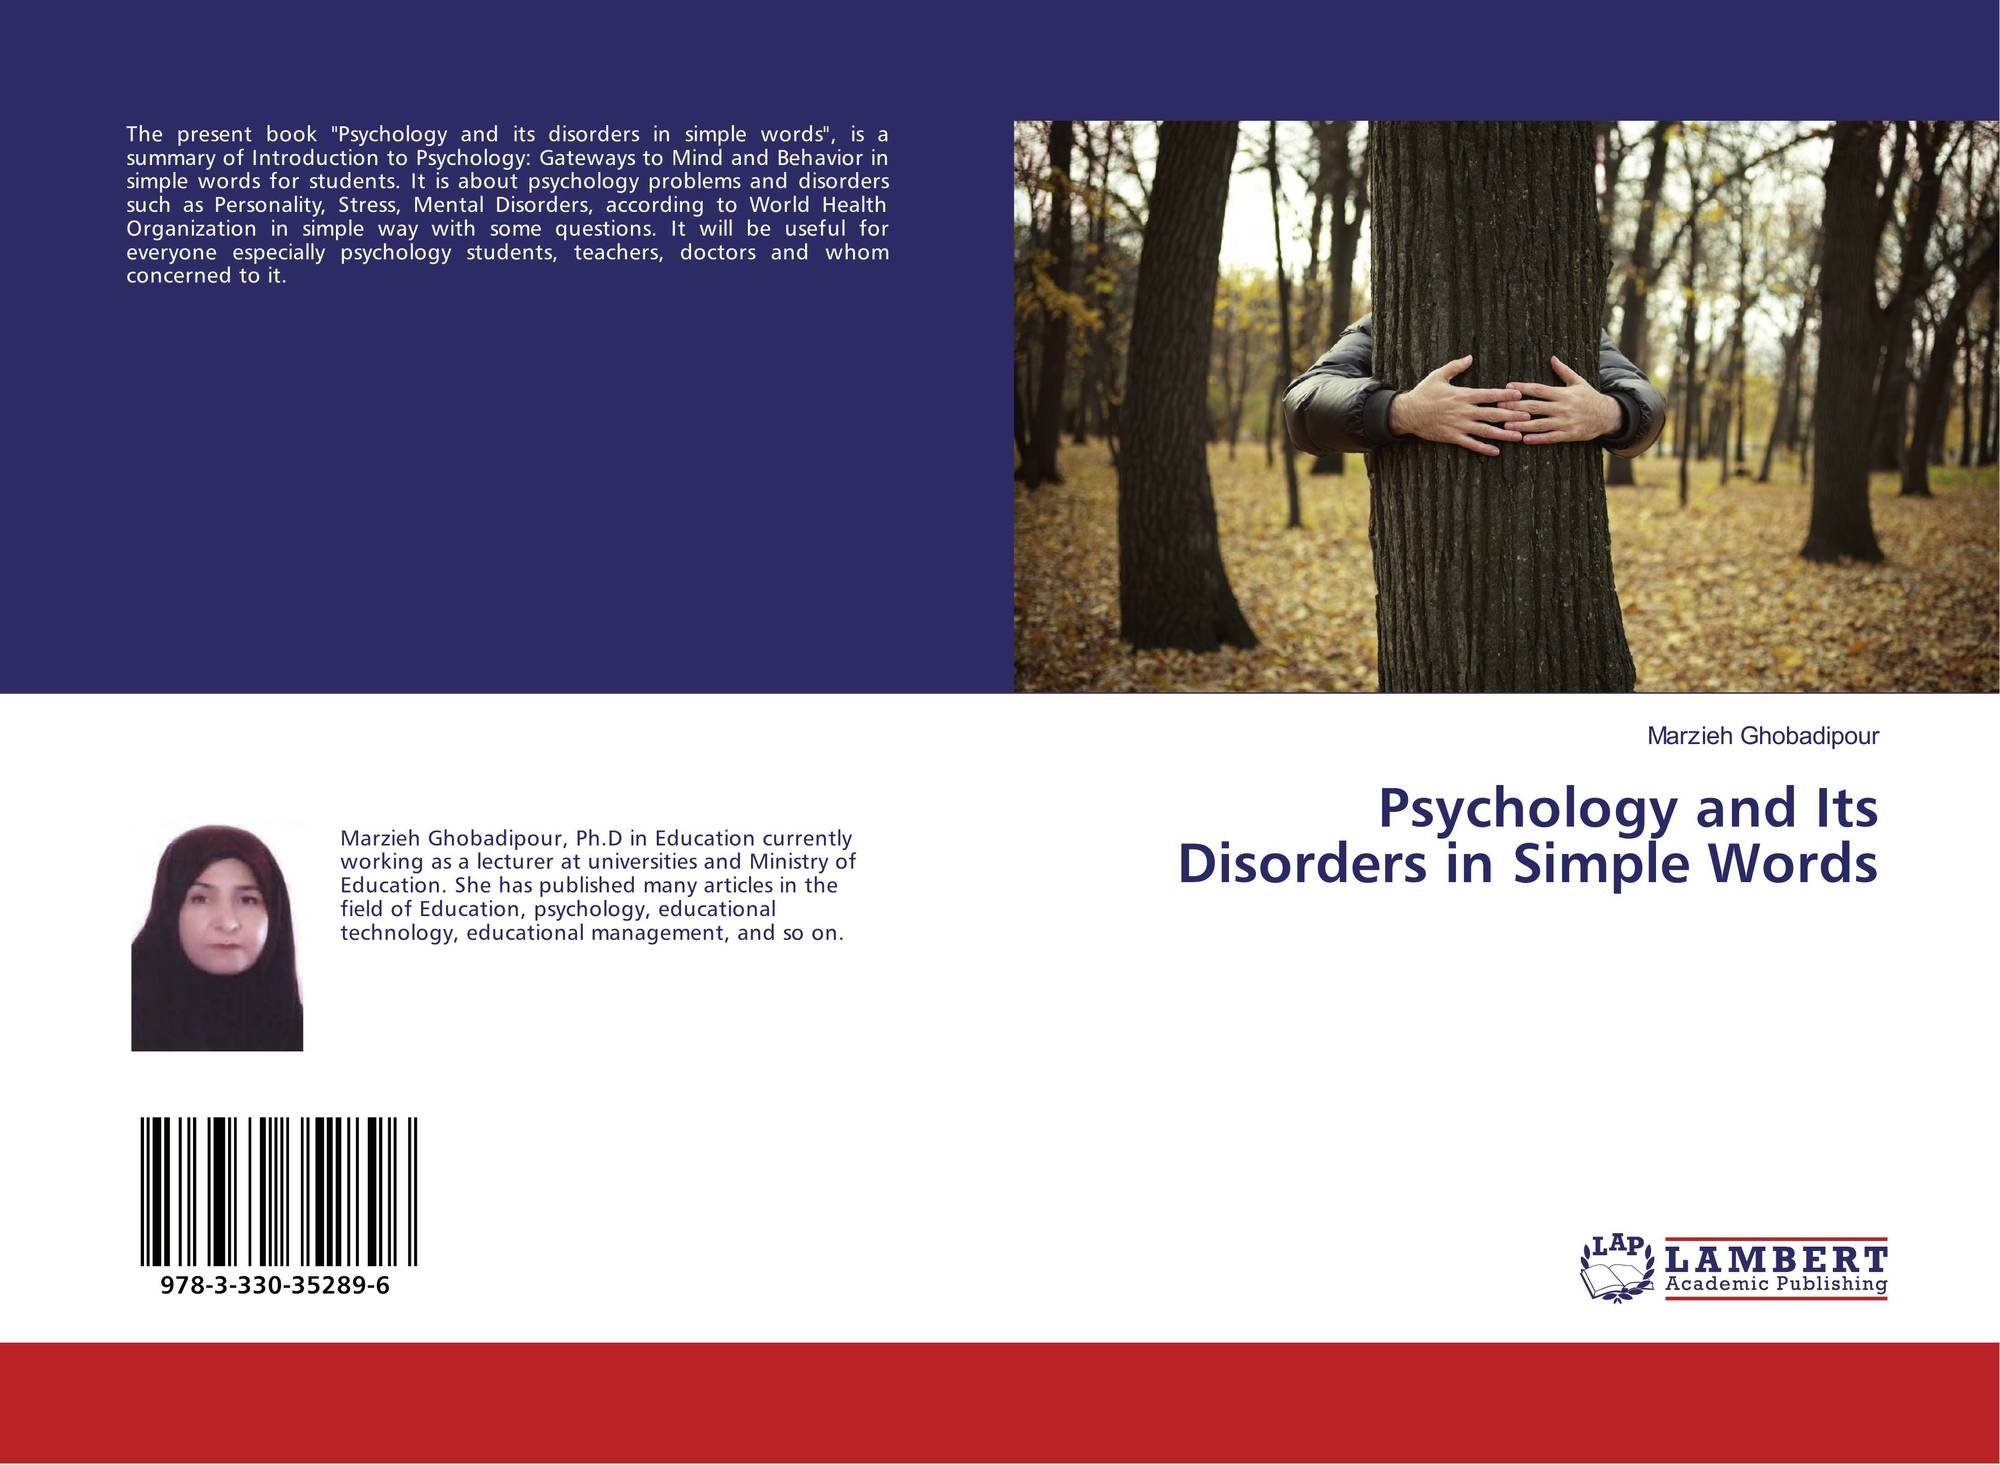 Psychology and Its Disorders in Simple Words, 978-3-330